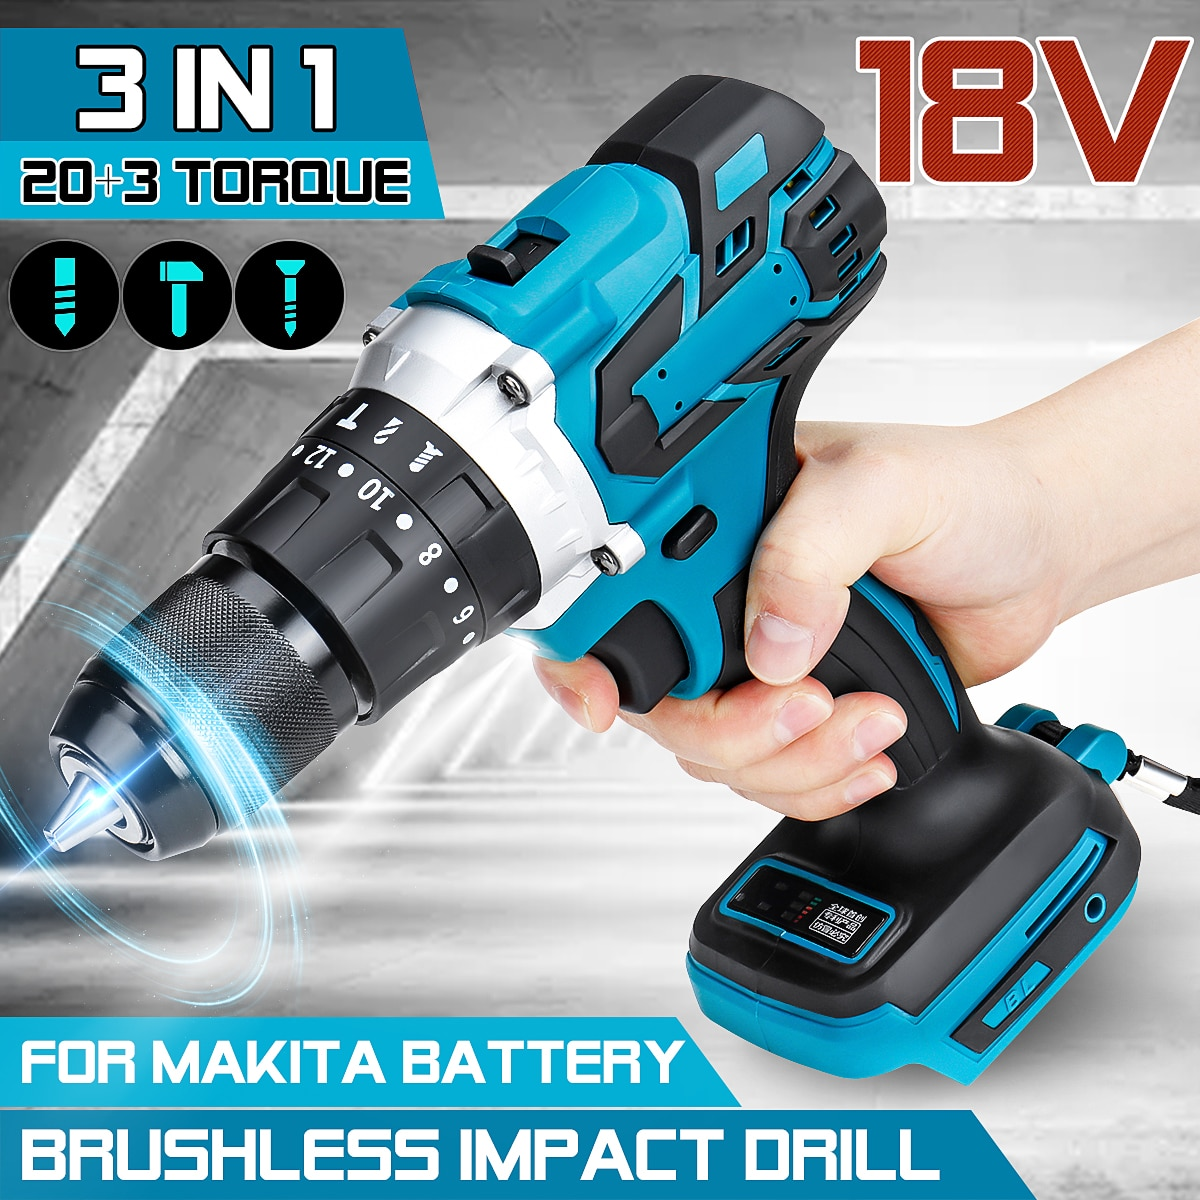 3 in 1 Brushless Electric Hammer Drill Electric Screwdriver 13mm 20+3 Torque Cordless Impact Drill for Makita Battery 18V